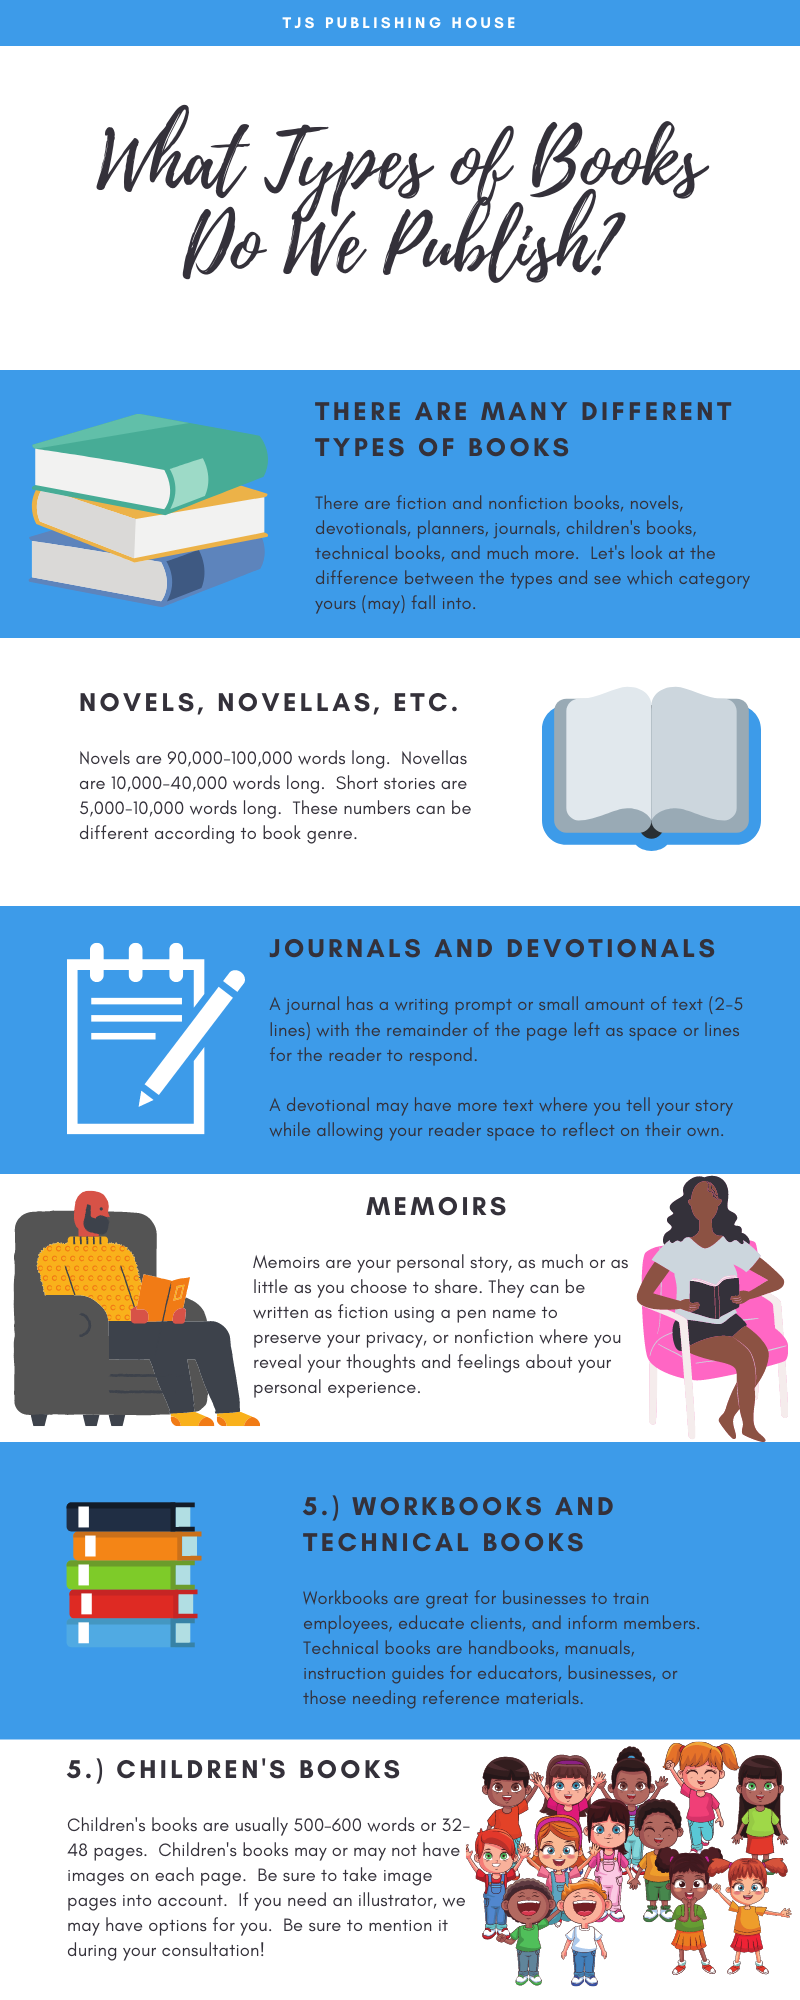 What Type of Books Do We Publish at TJS